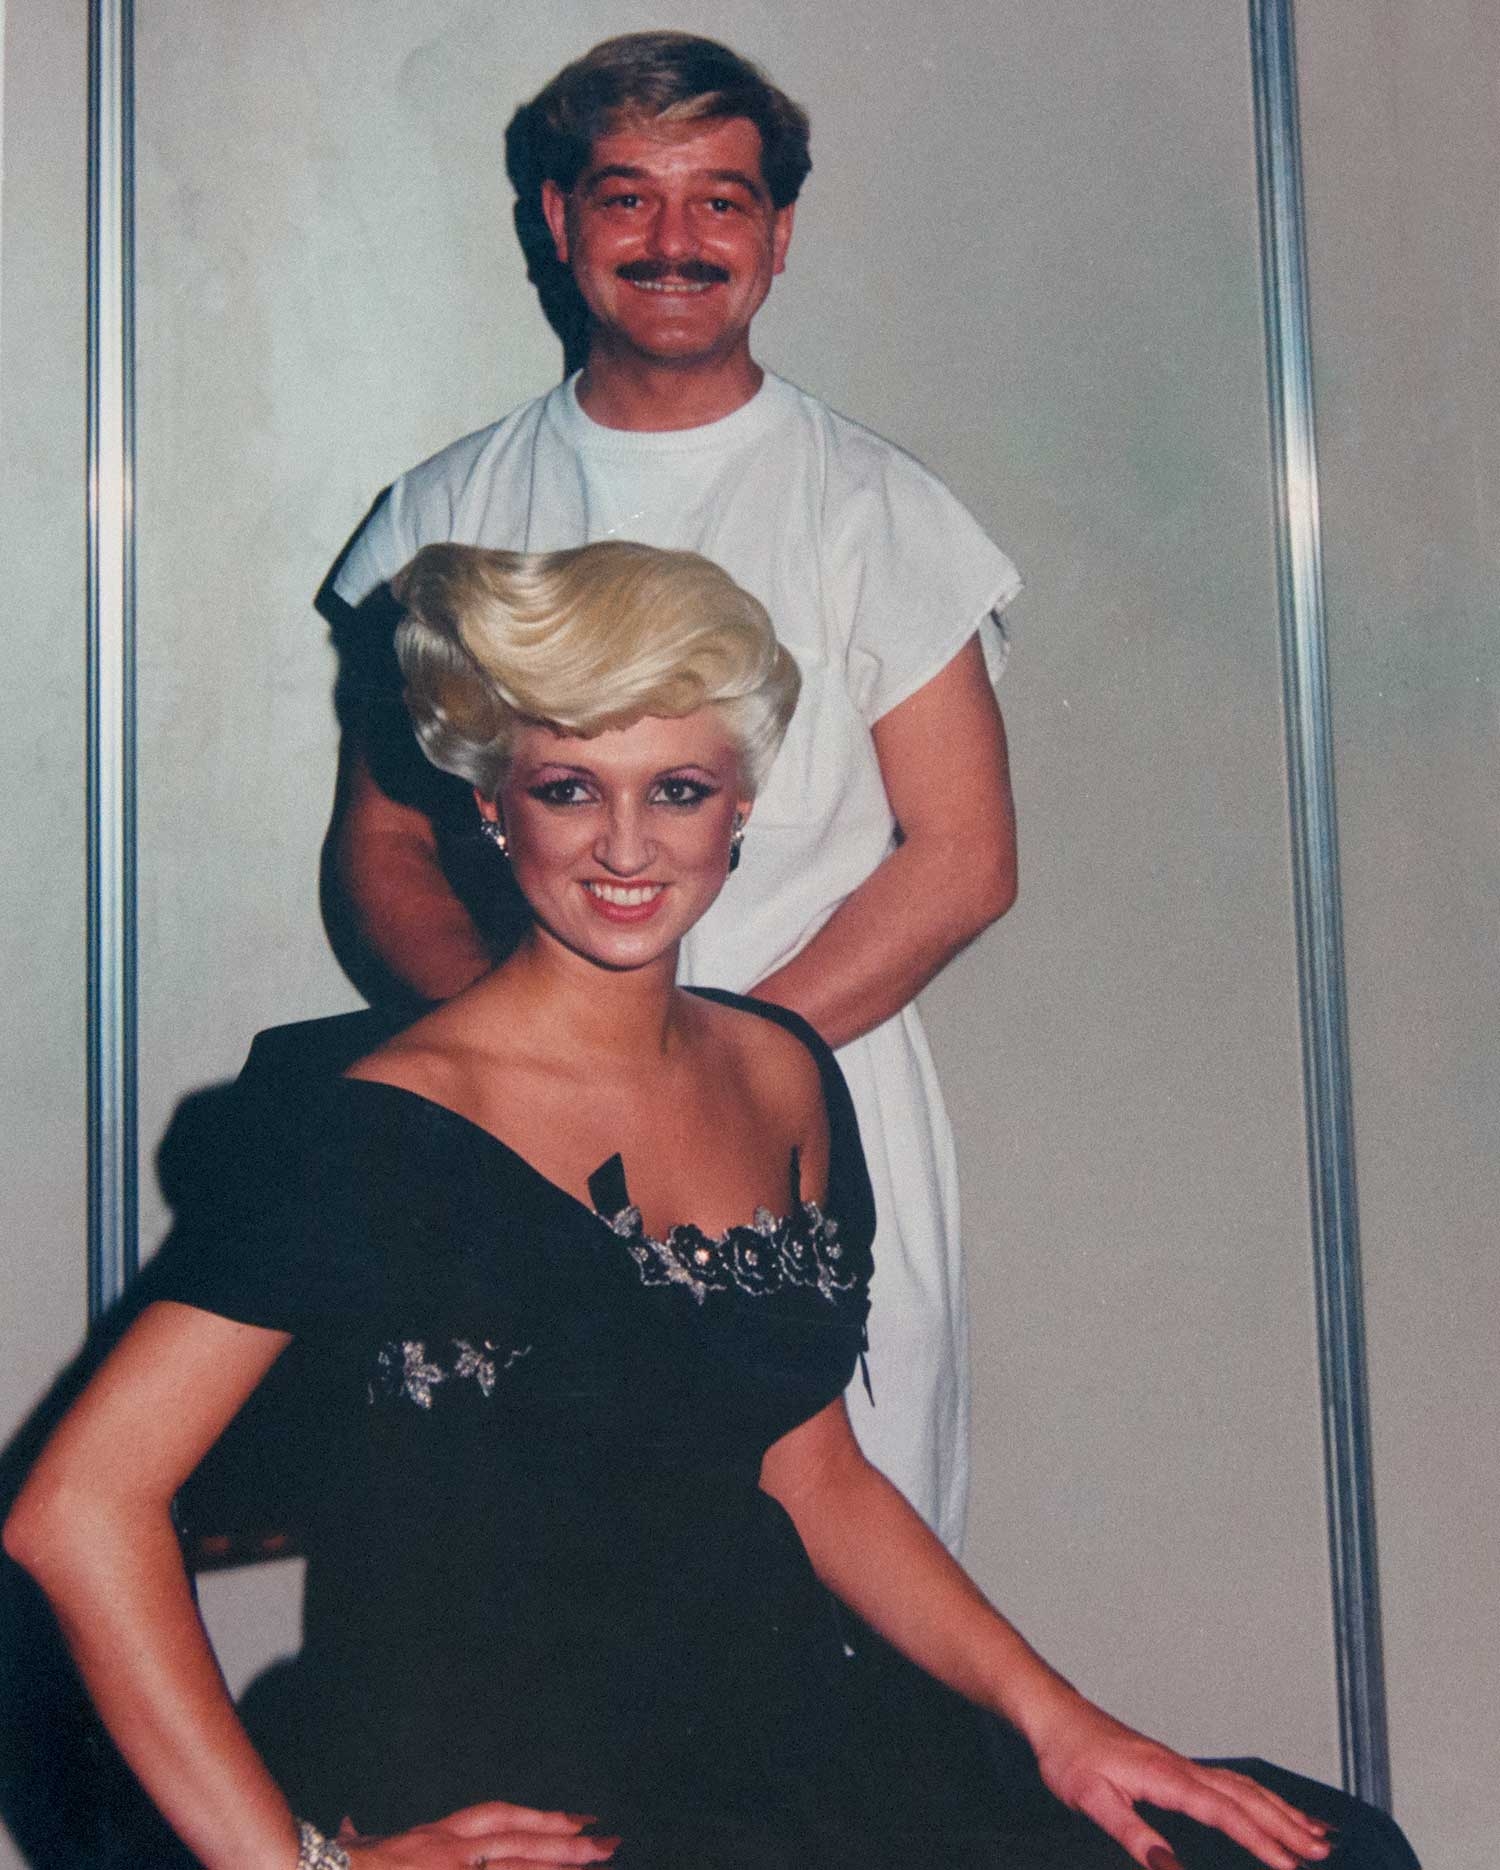 The finished look… Glen and model demonstrate an evening style at the world championships in Italy